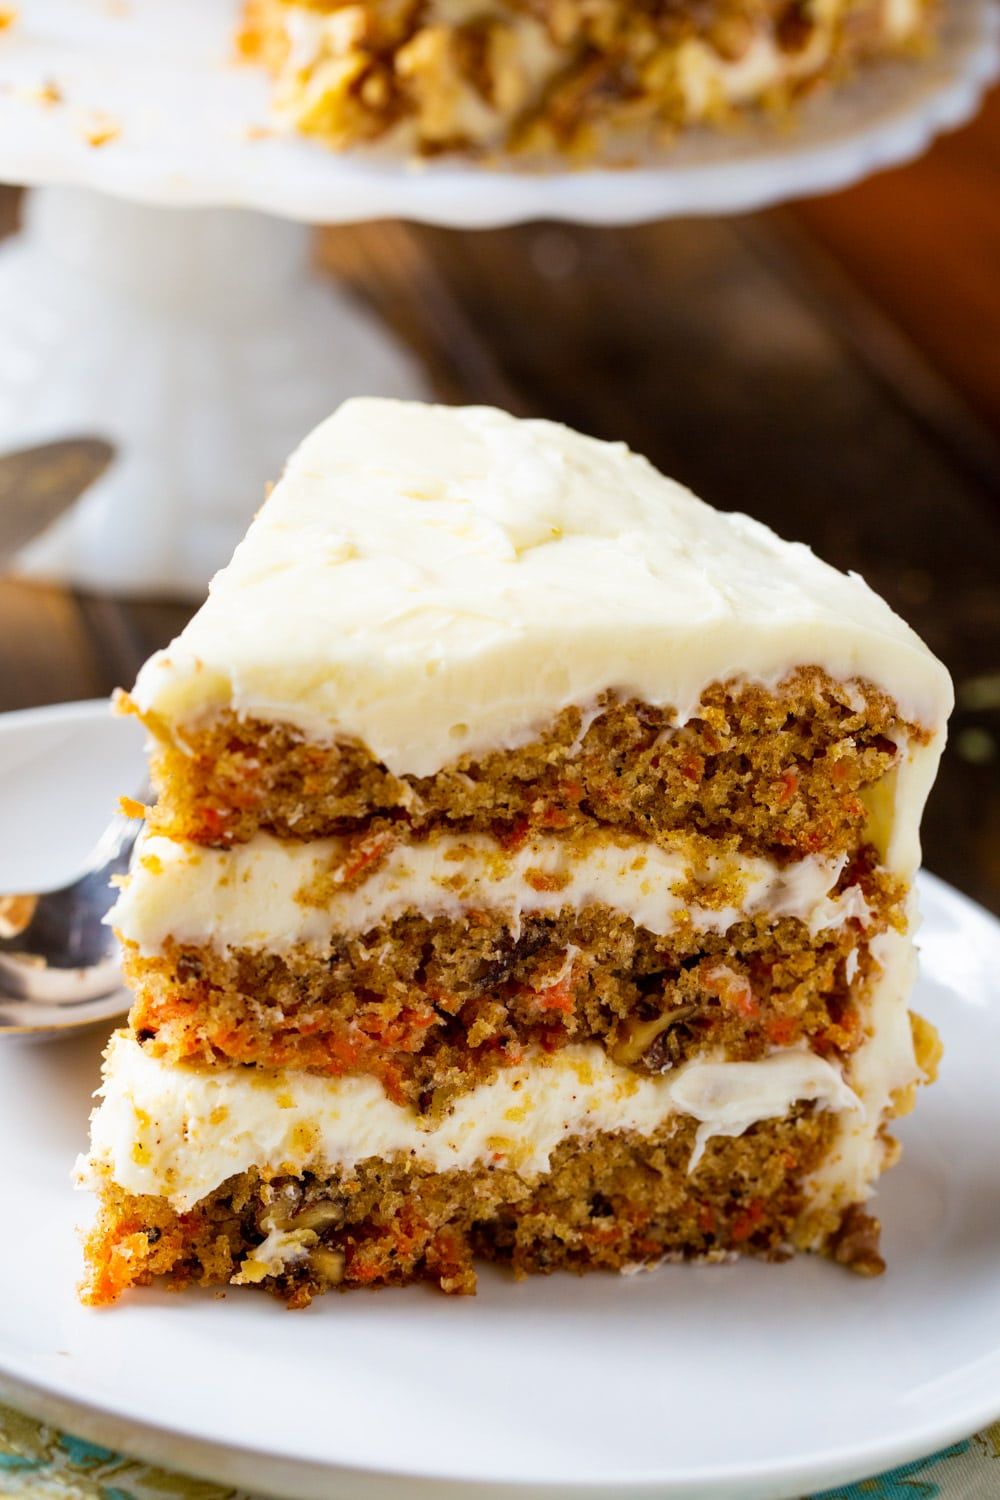 Slice of Mama Dip's Carrot Cake on a plate.